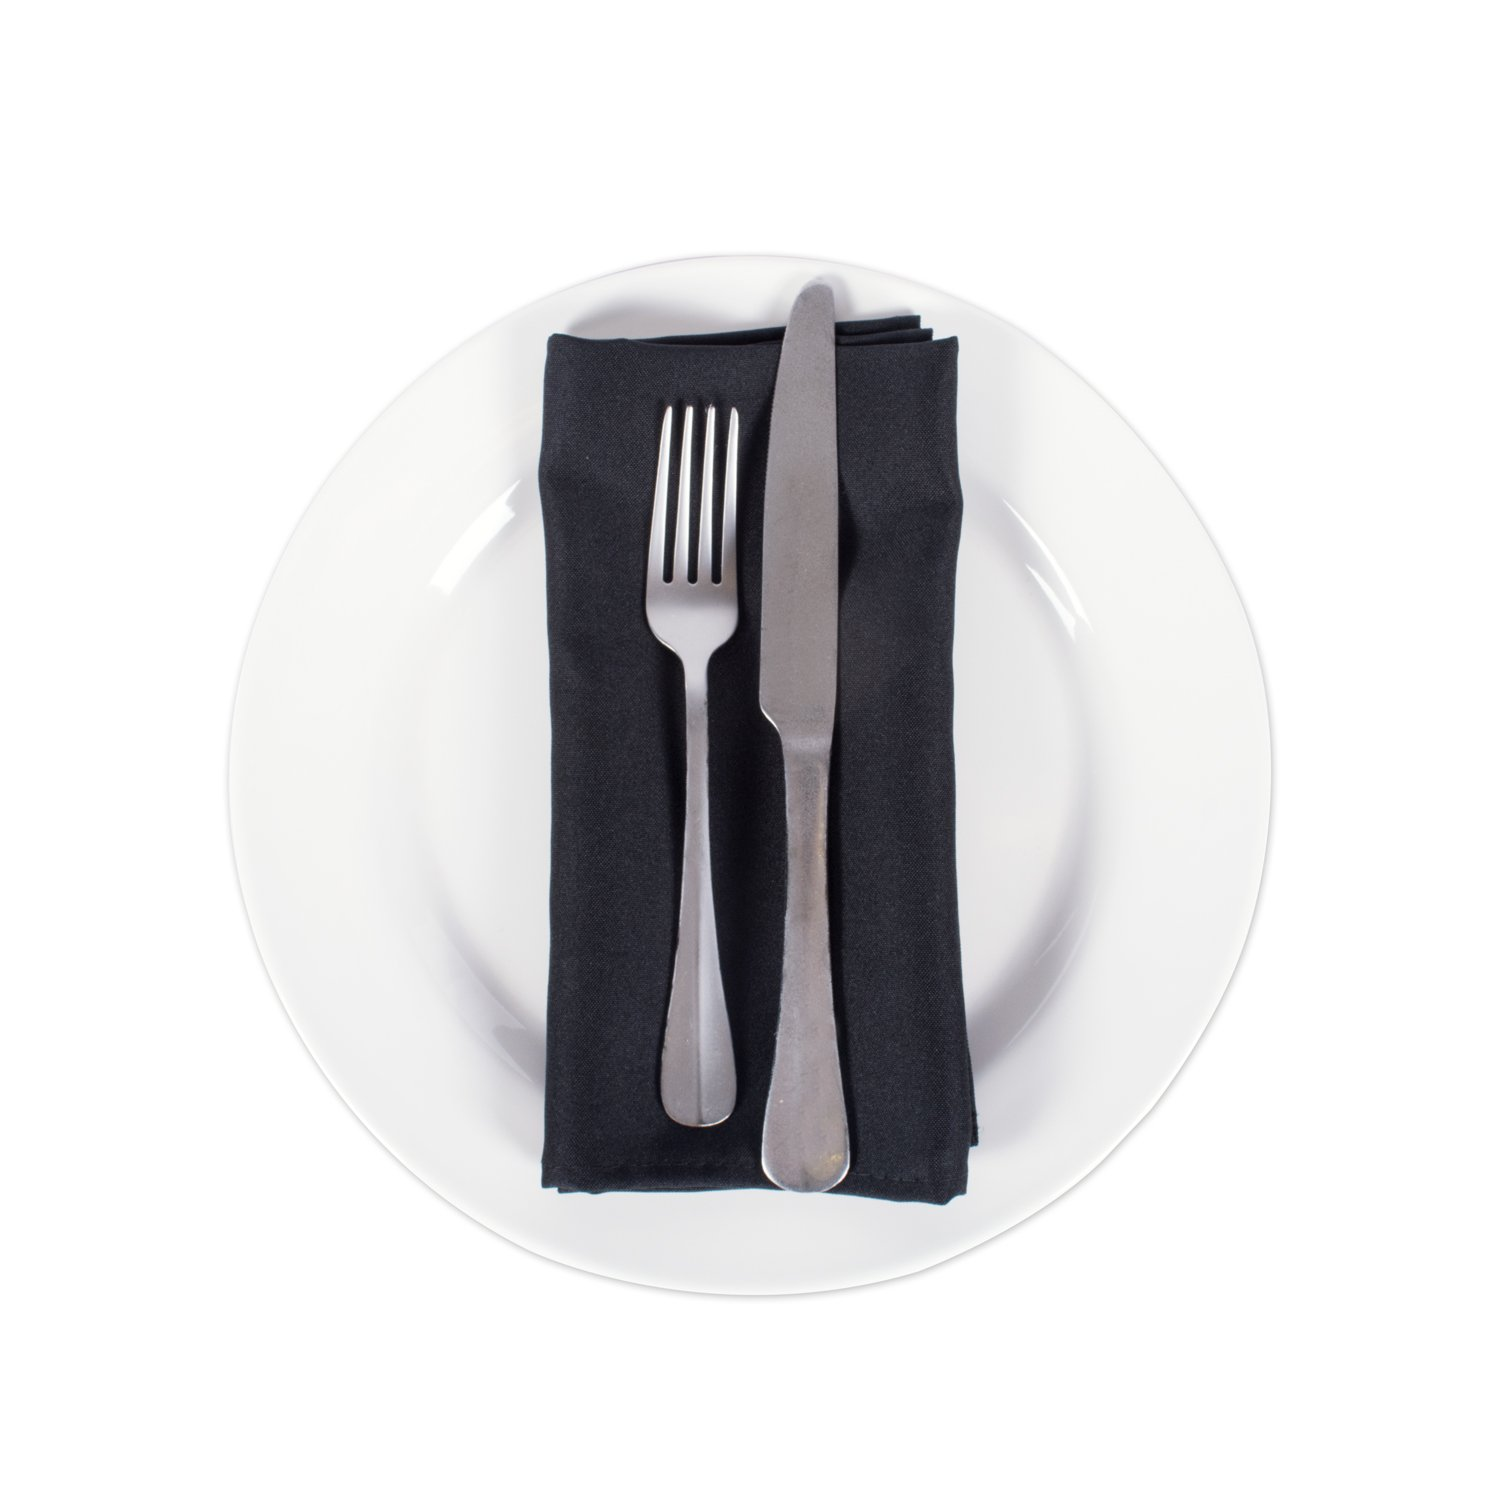 E-Living Store Polyester Commercial Quality Heavy Duty Cloth Napkins (18x18-inch) for Restaurant or Home Table, Bulk Set of 12, Black by E-Living Store (Image #3)